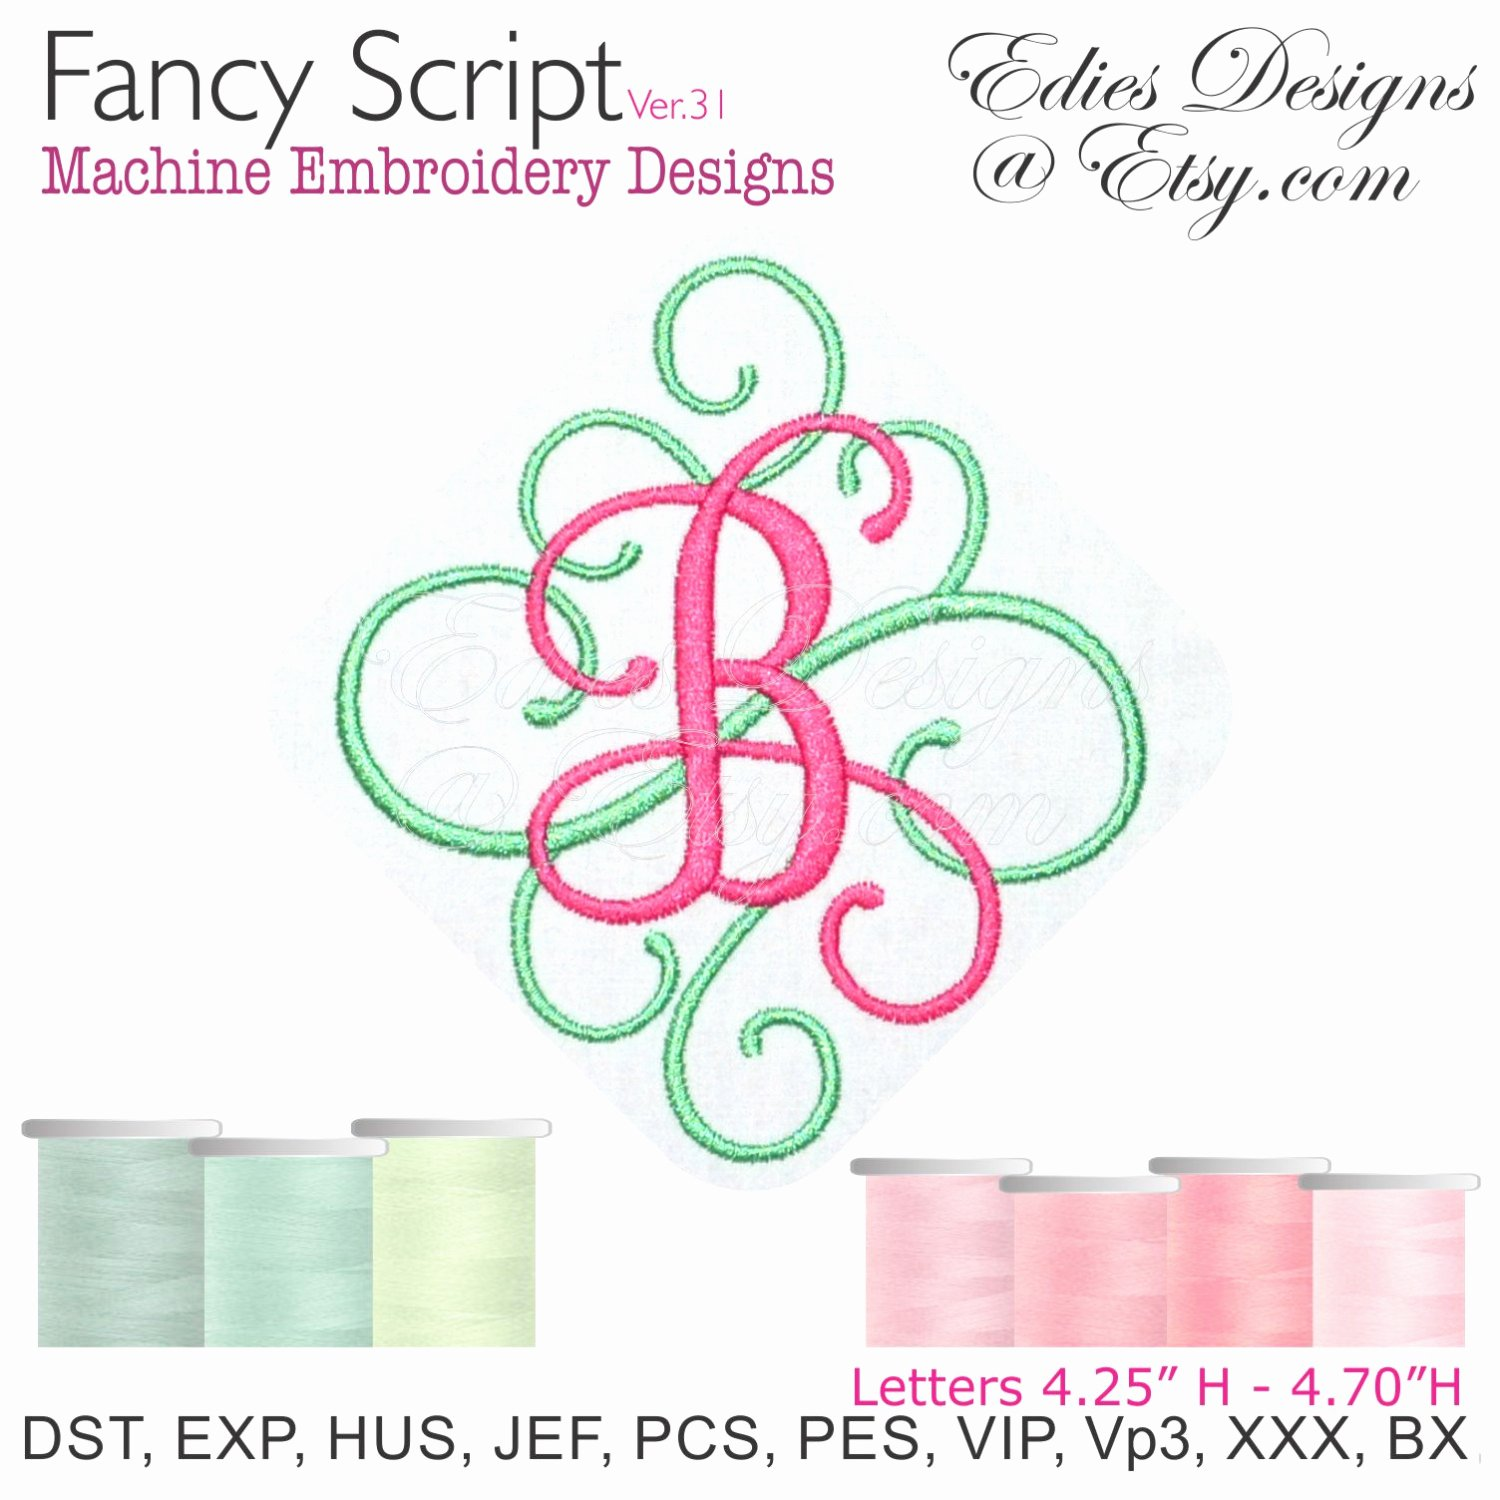 Free Embroidery Monogram Fonts Best Of Fancy Script Ver 31 Monograms Machine Embroidery Designs